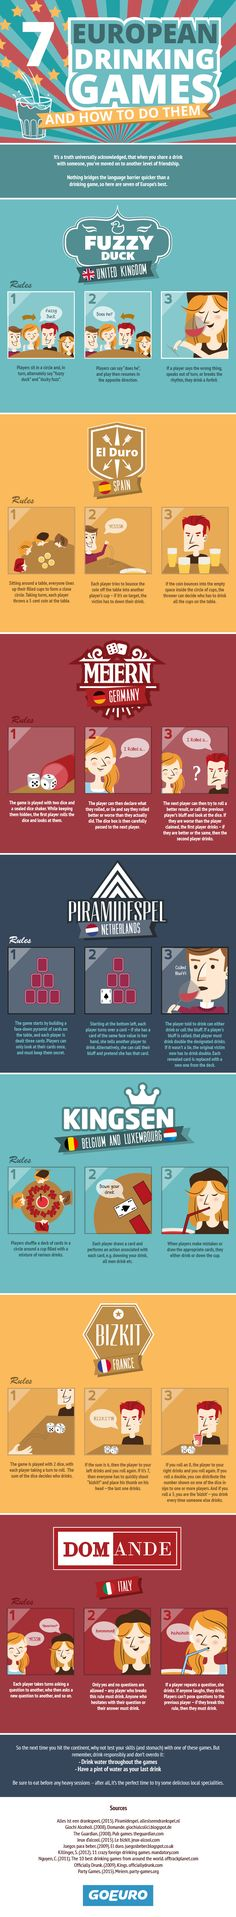 7 European Drinking Games and How to Play Them #infographic #Drinks #Games